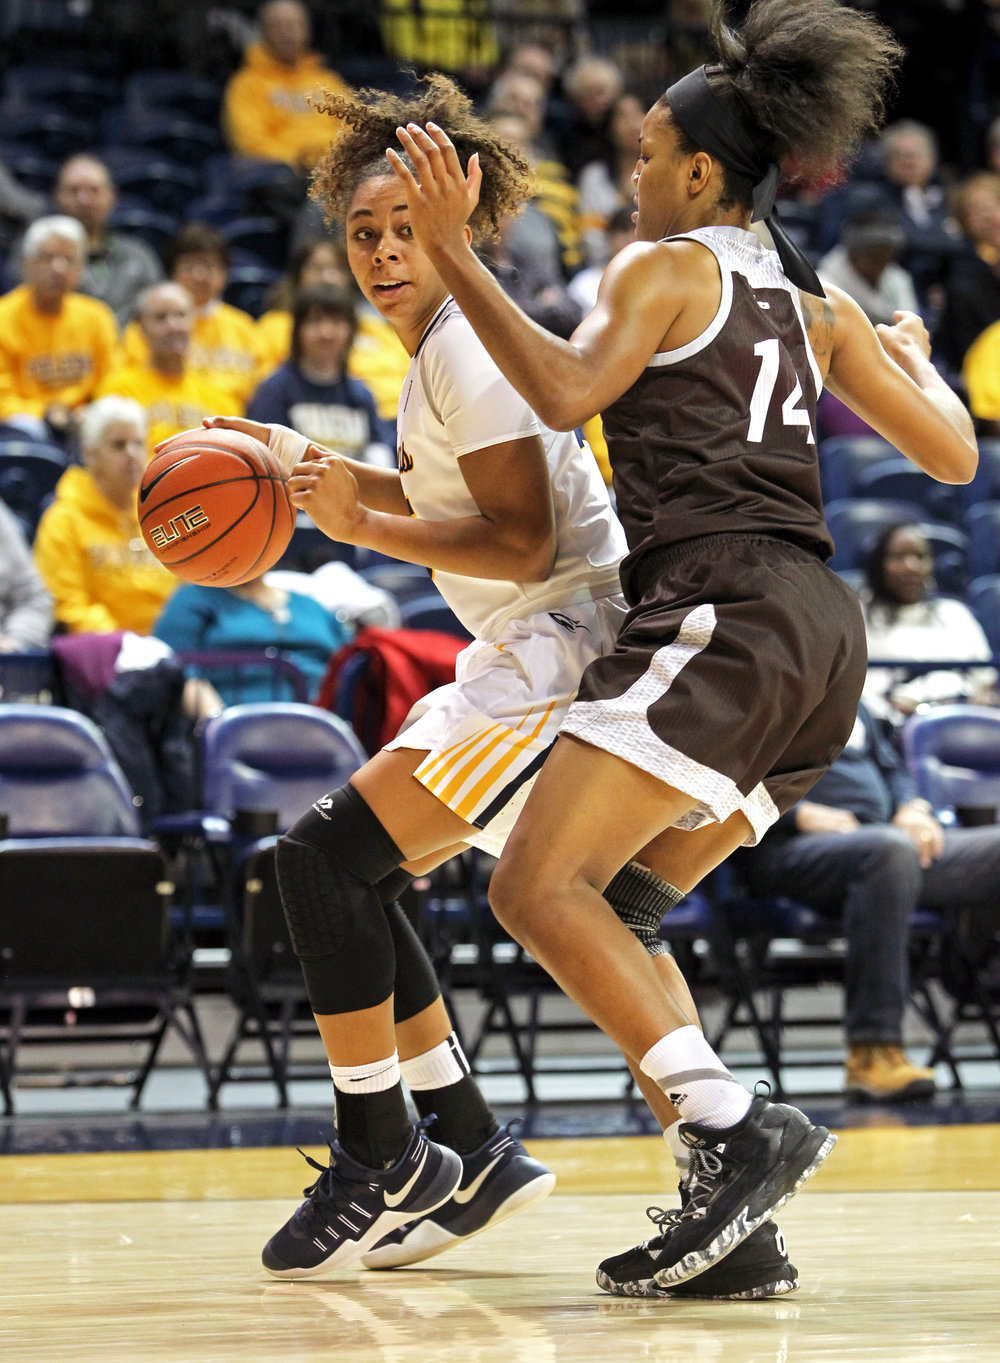 University of Toledo guard Jada Woody (35) looks for an opening around St. Bonaventure forward Gabby Richmond (14) during the women's basketball game at Savage Arena in Toledo, Oh. on Sunday, Dec. 11, 2016.